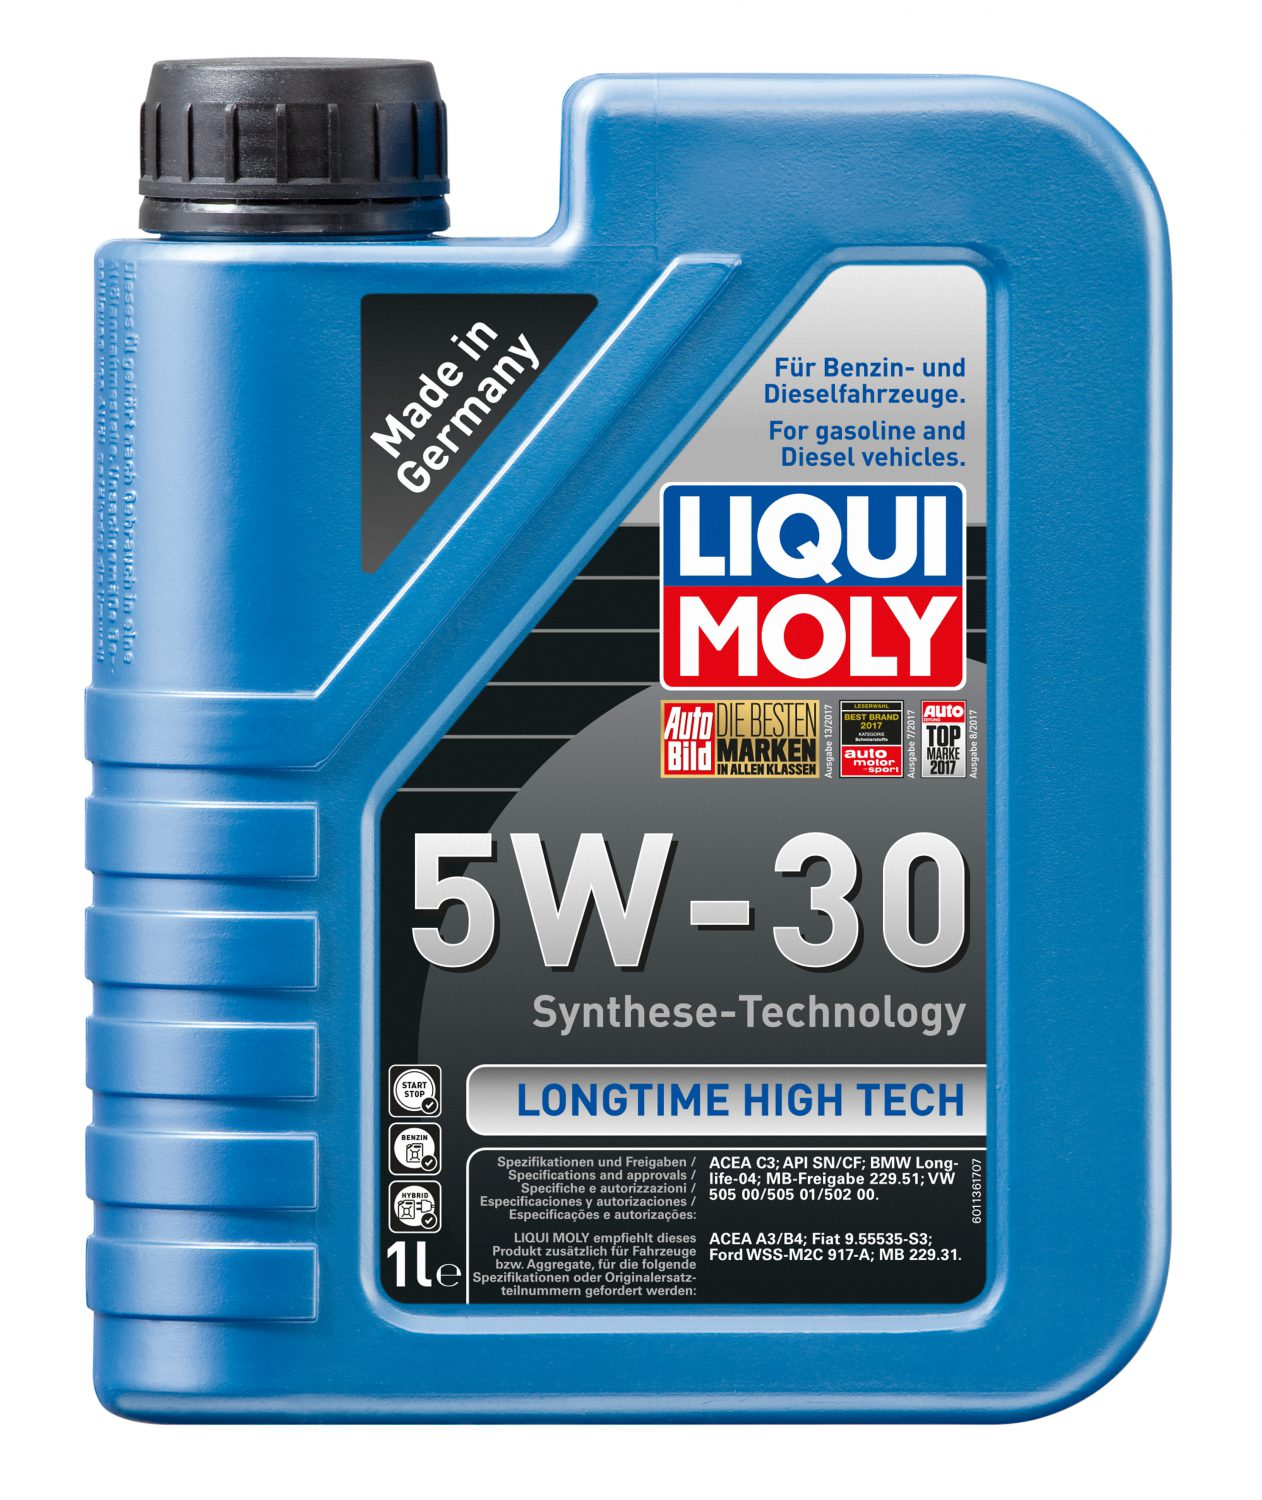 Mobil 1 Oil Filter >> Liqui Moly LONGTIME HIGH TECH 5W-30 - Meister Werks ...